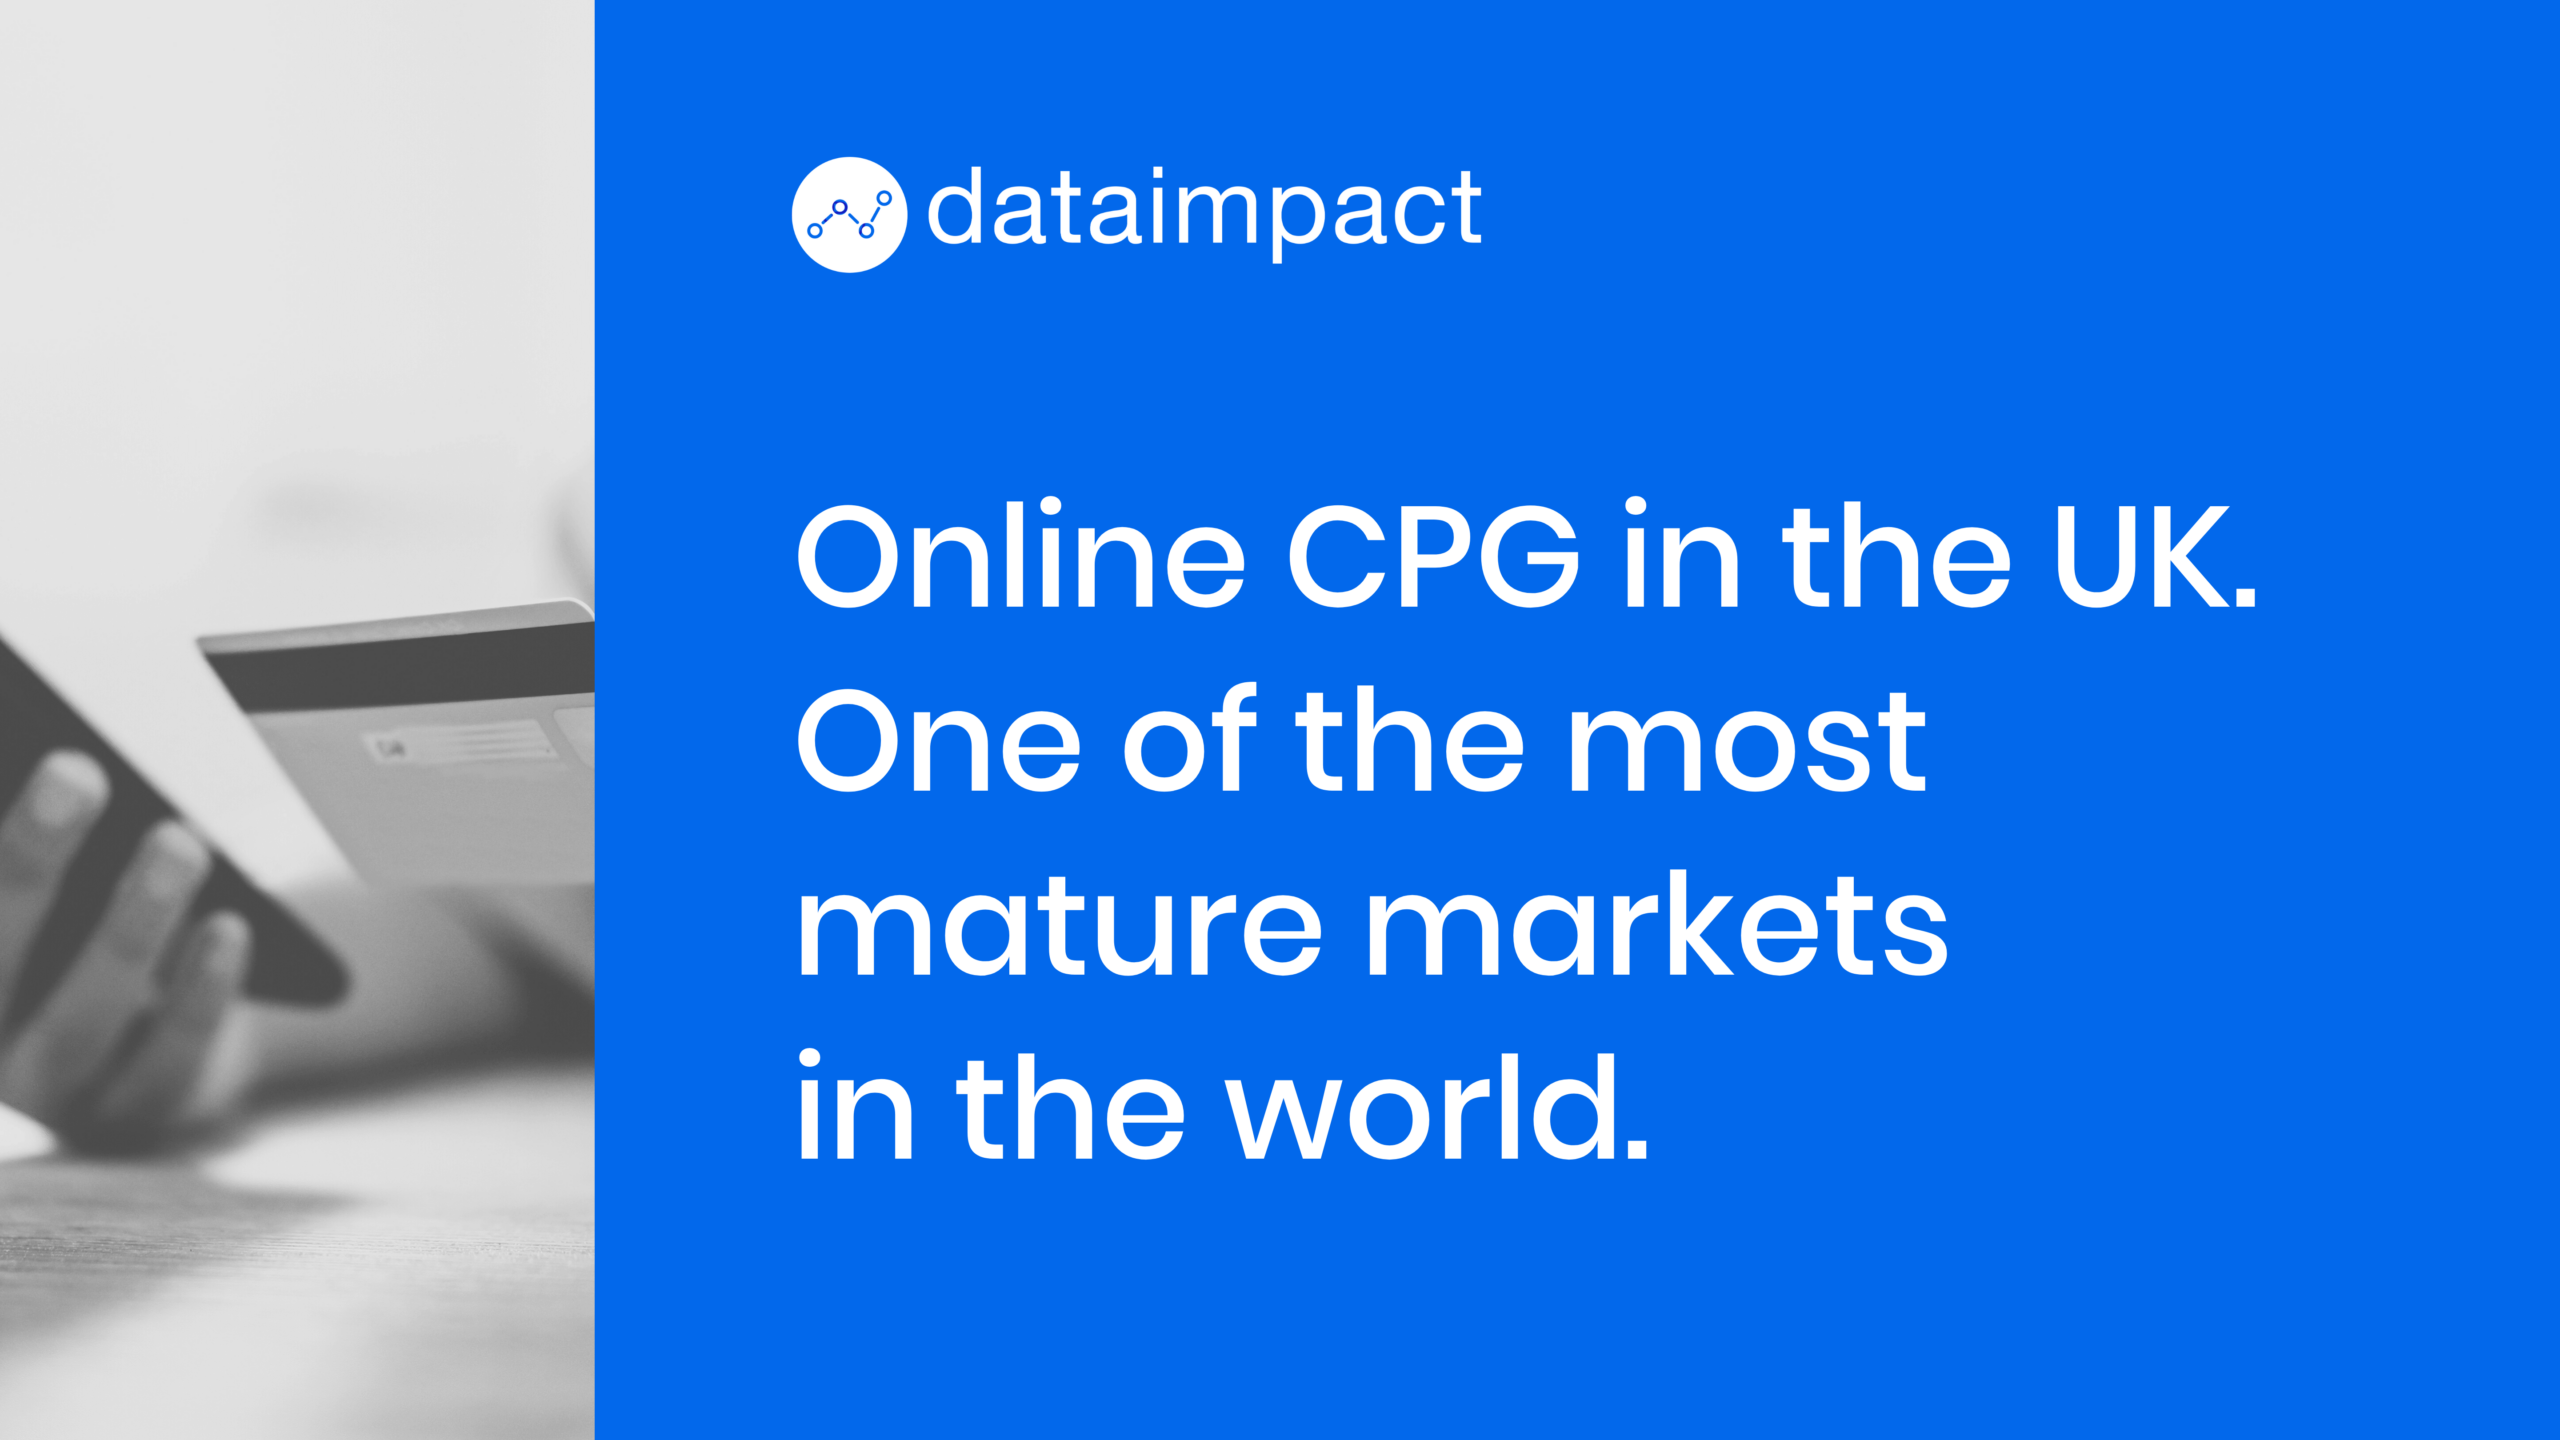 Online CPG in the UK